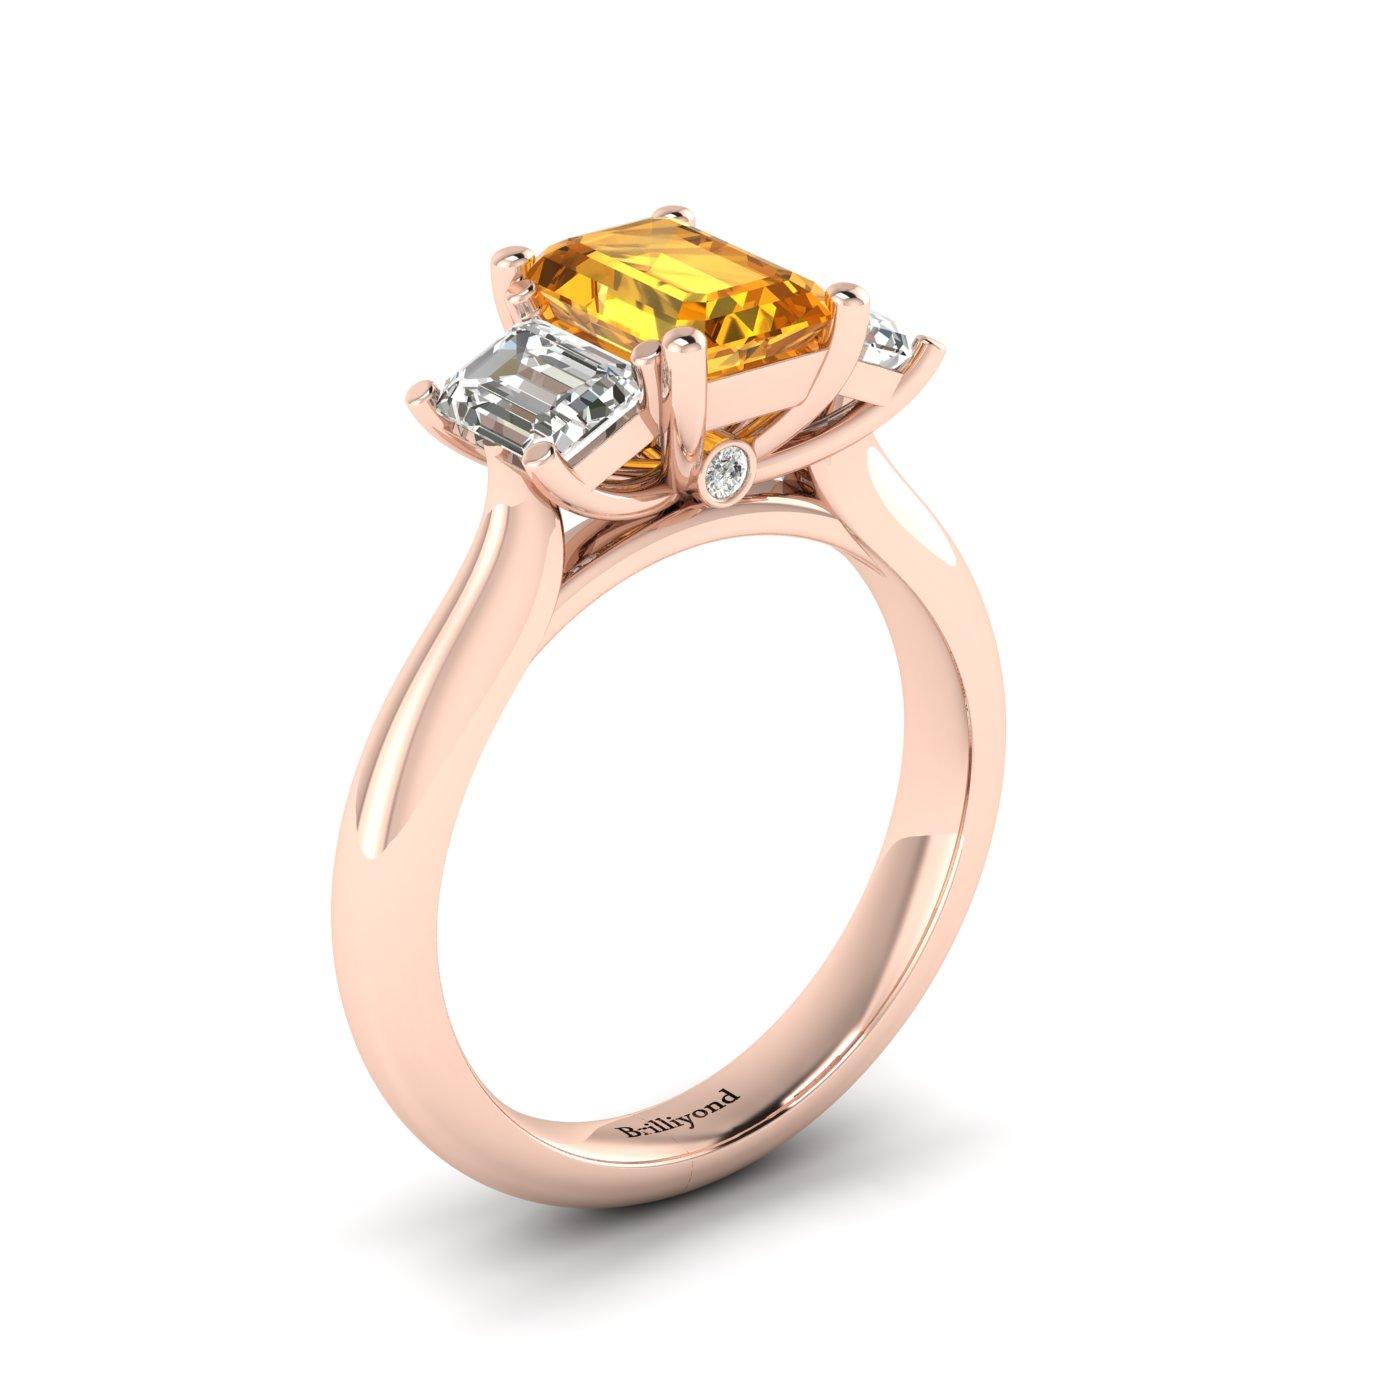 Yellow Sapphire Rose Gold Emerald Cut Engagement Ring Blanche_image2